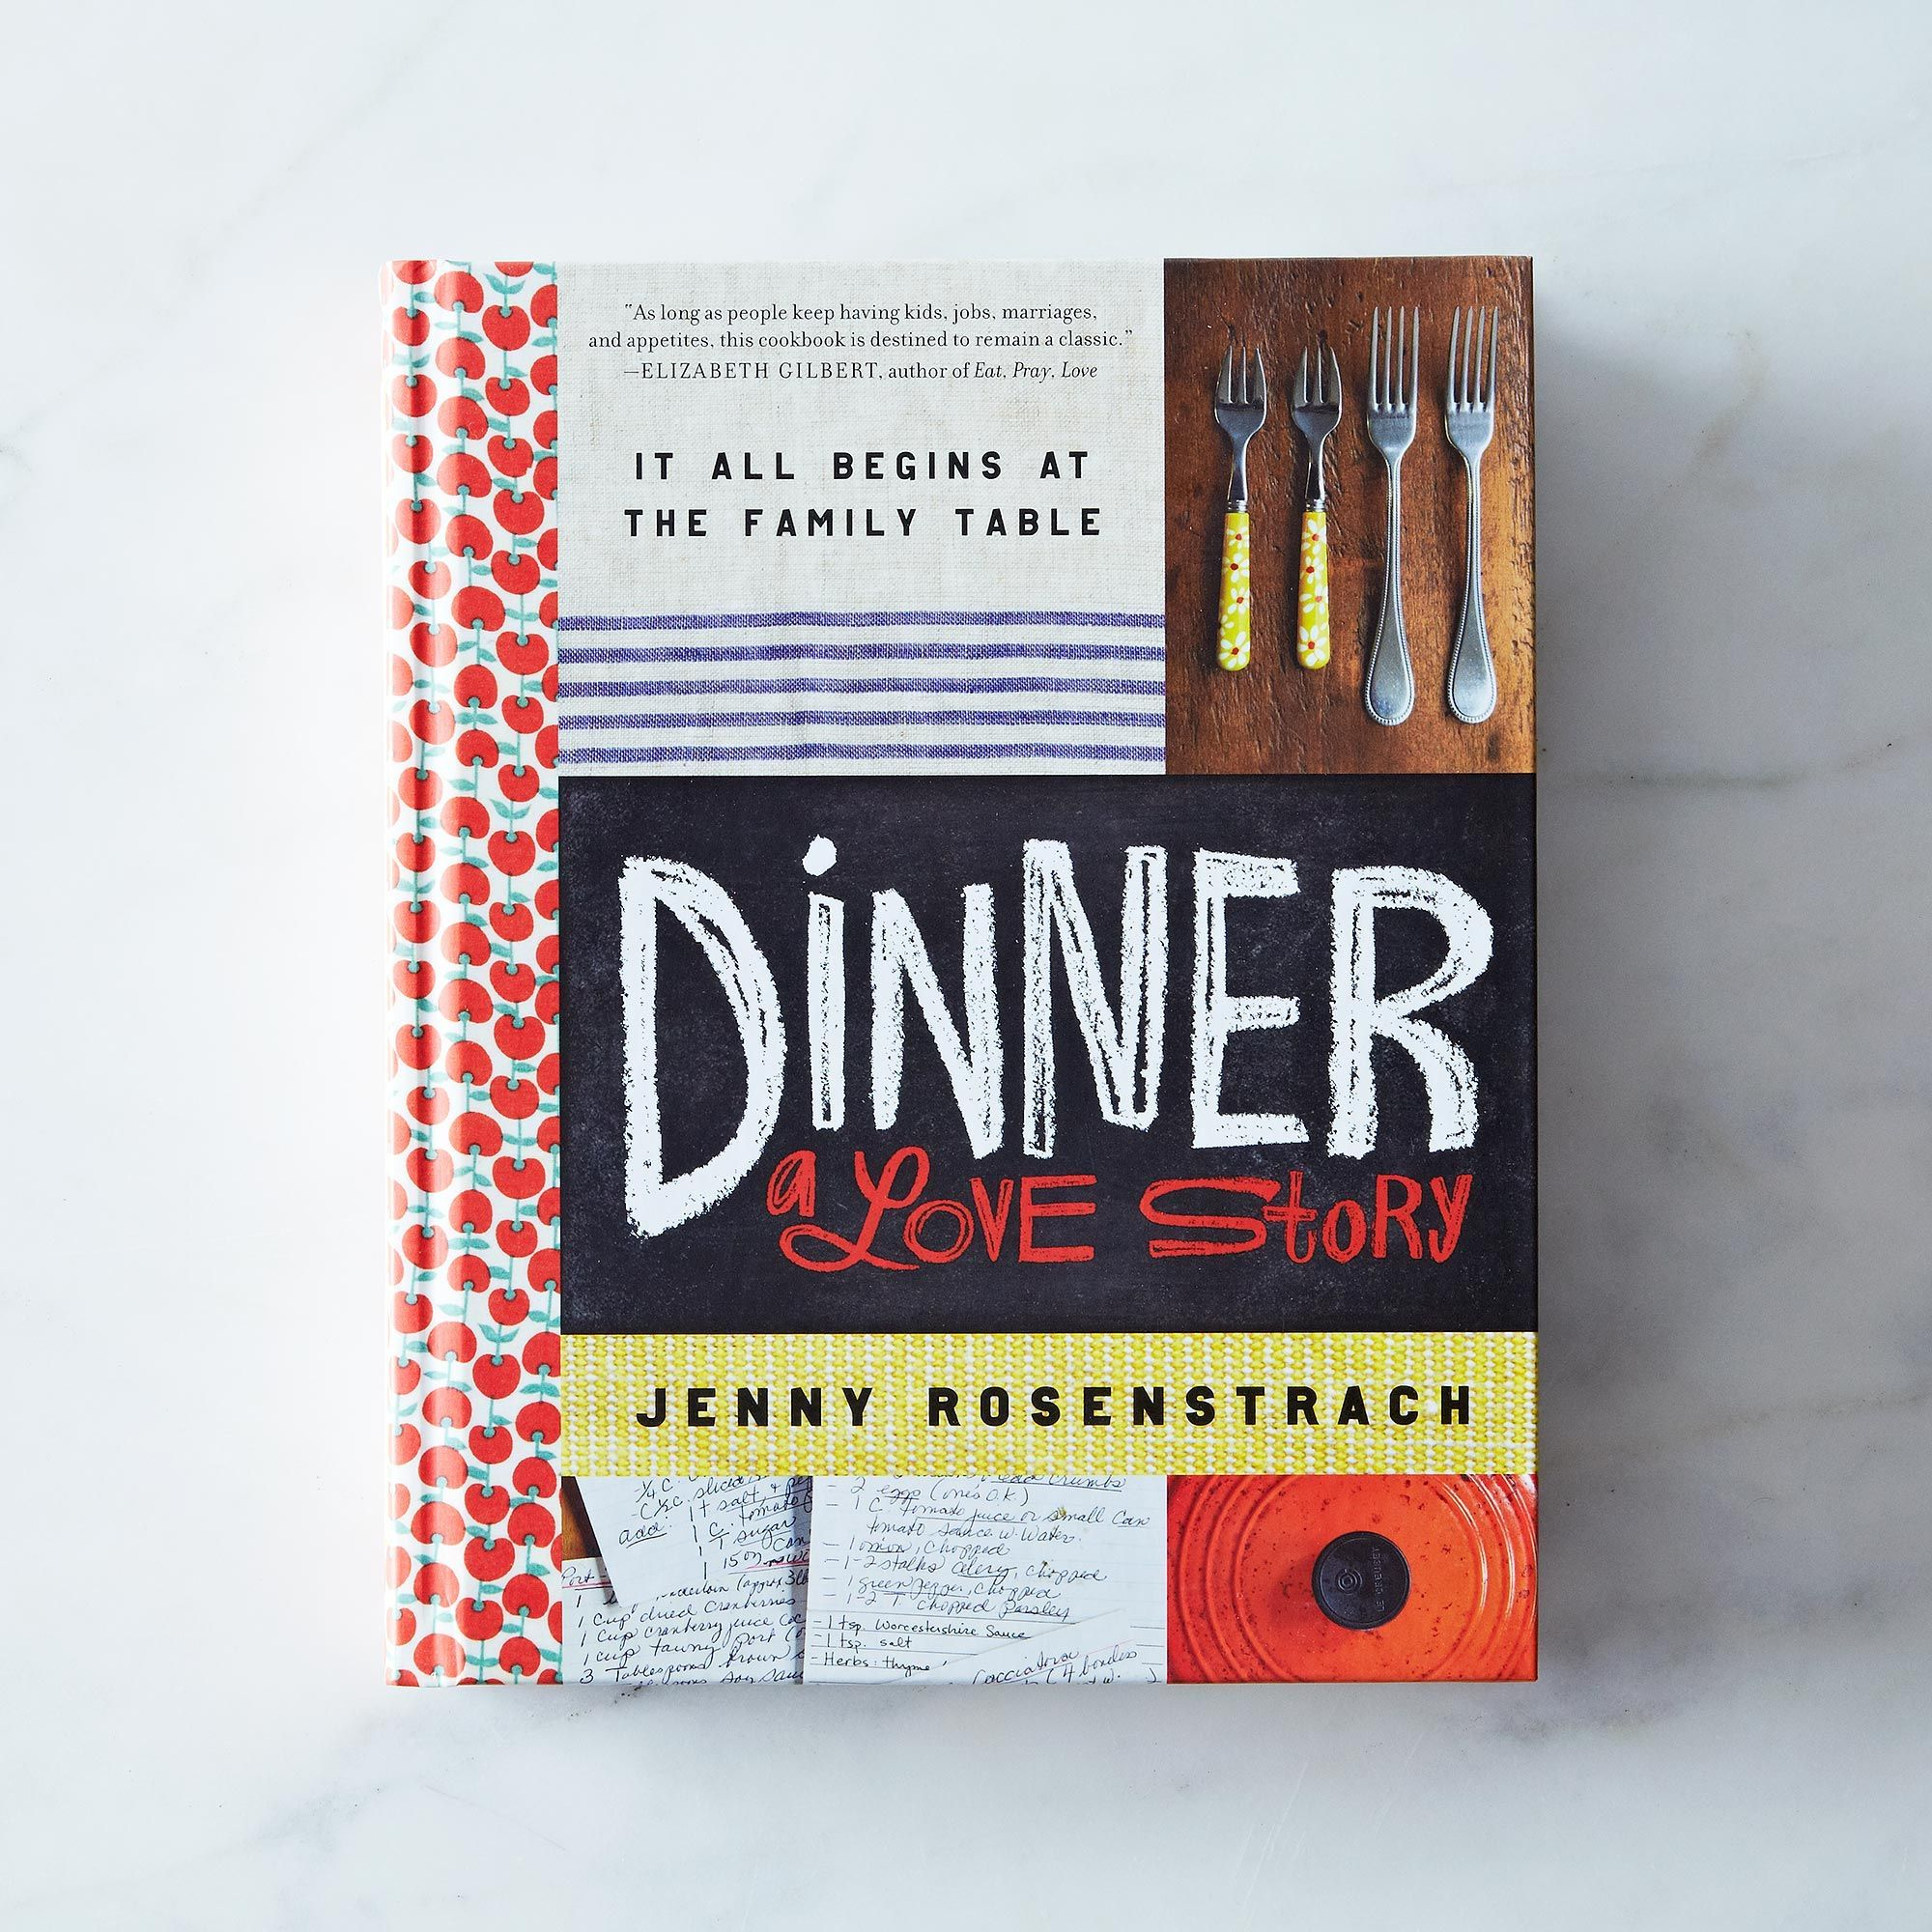 142d1add 7f1b 4e03 9d14 21a12f39883c  2014 0109 jenny rosenstrach dinner a love story book 001